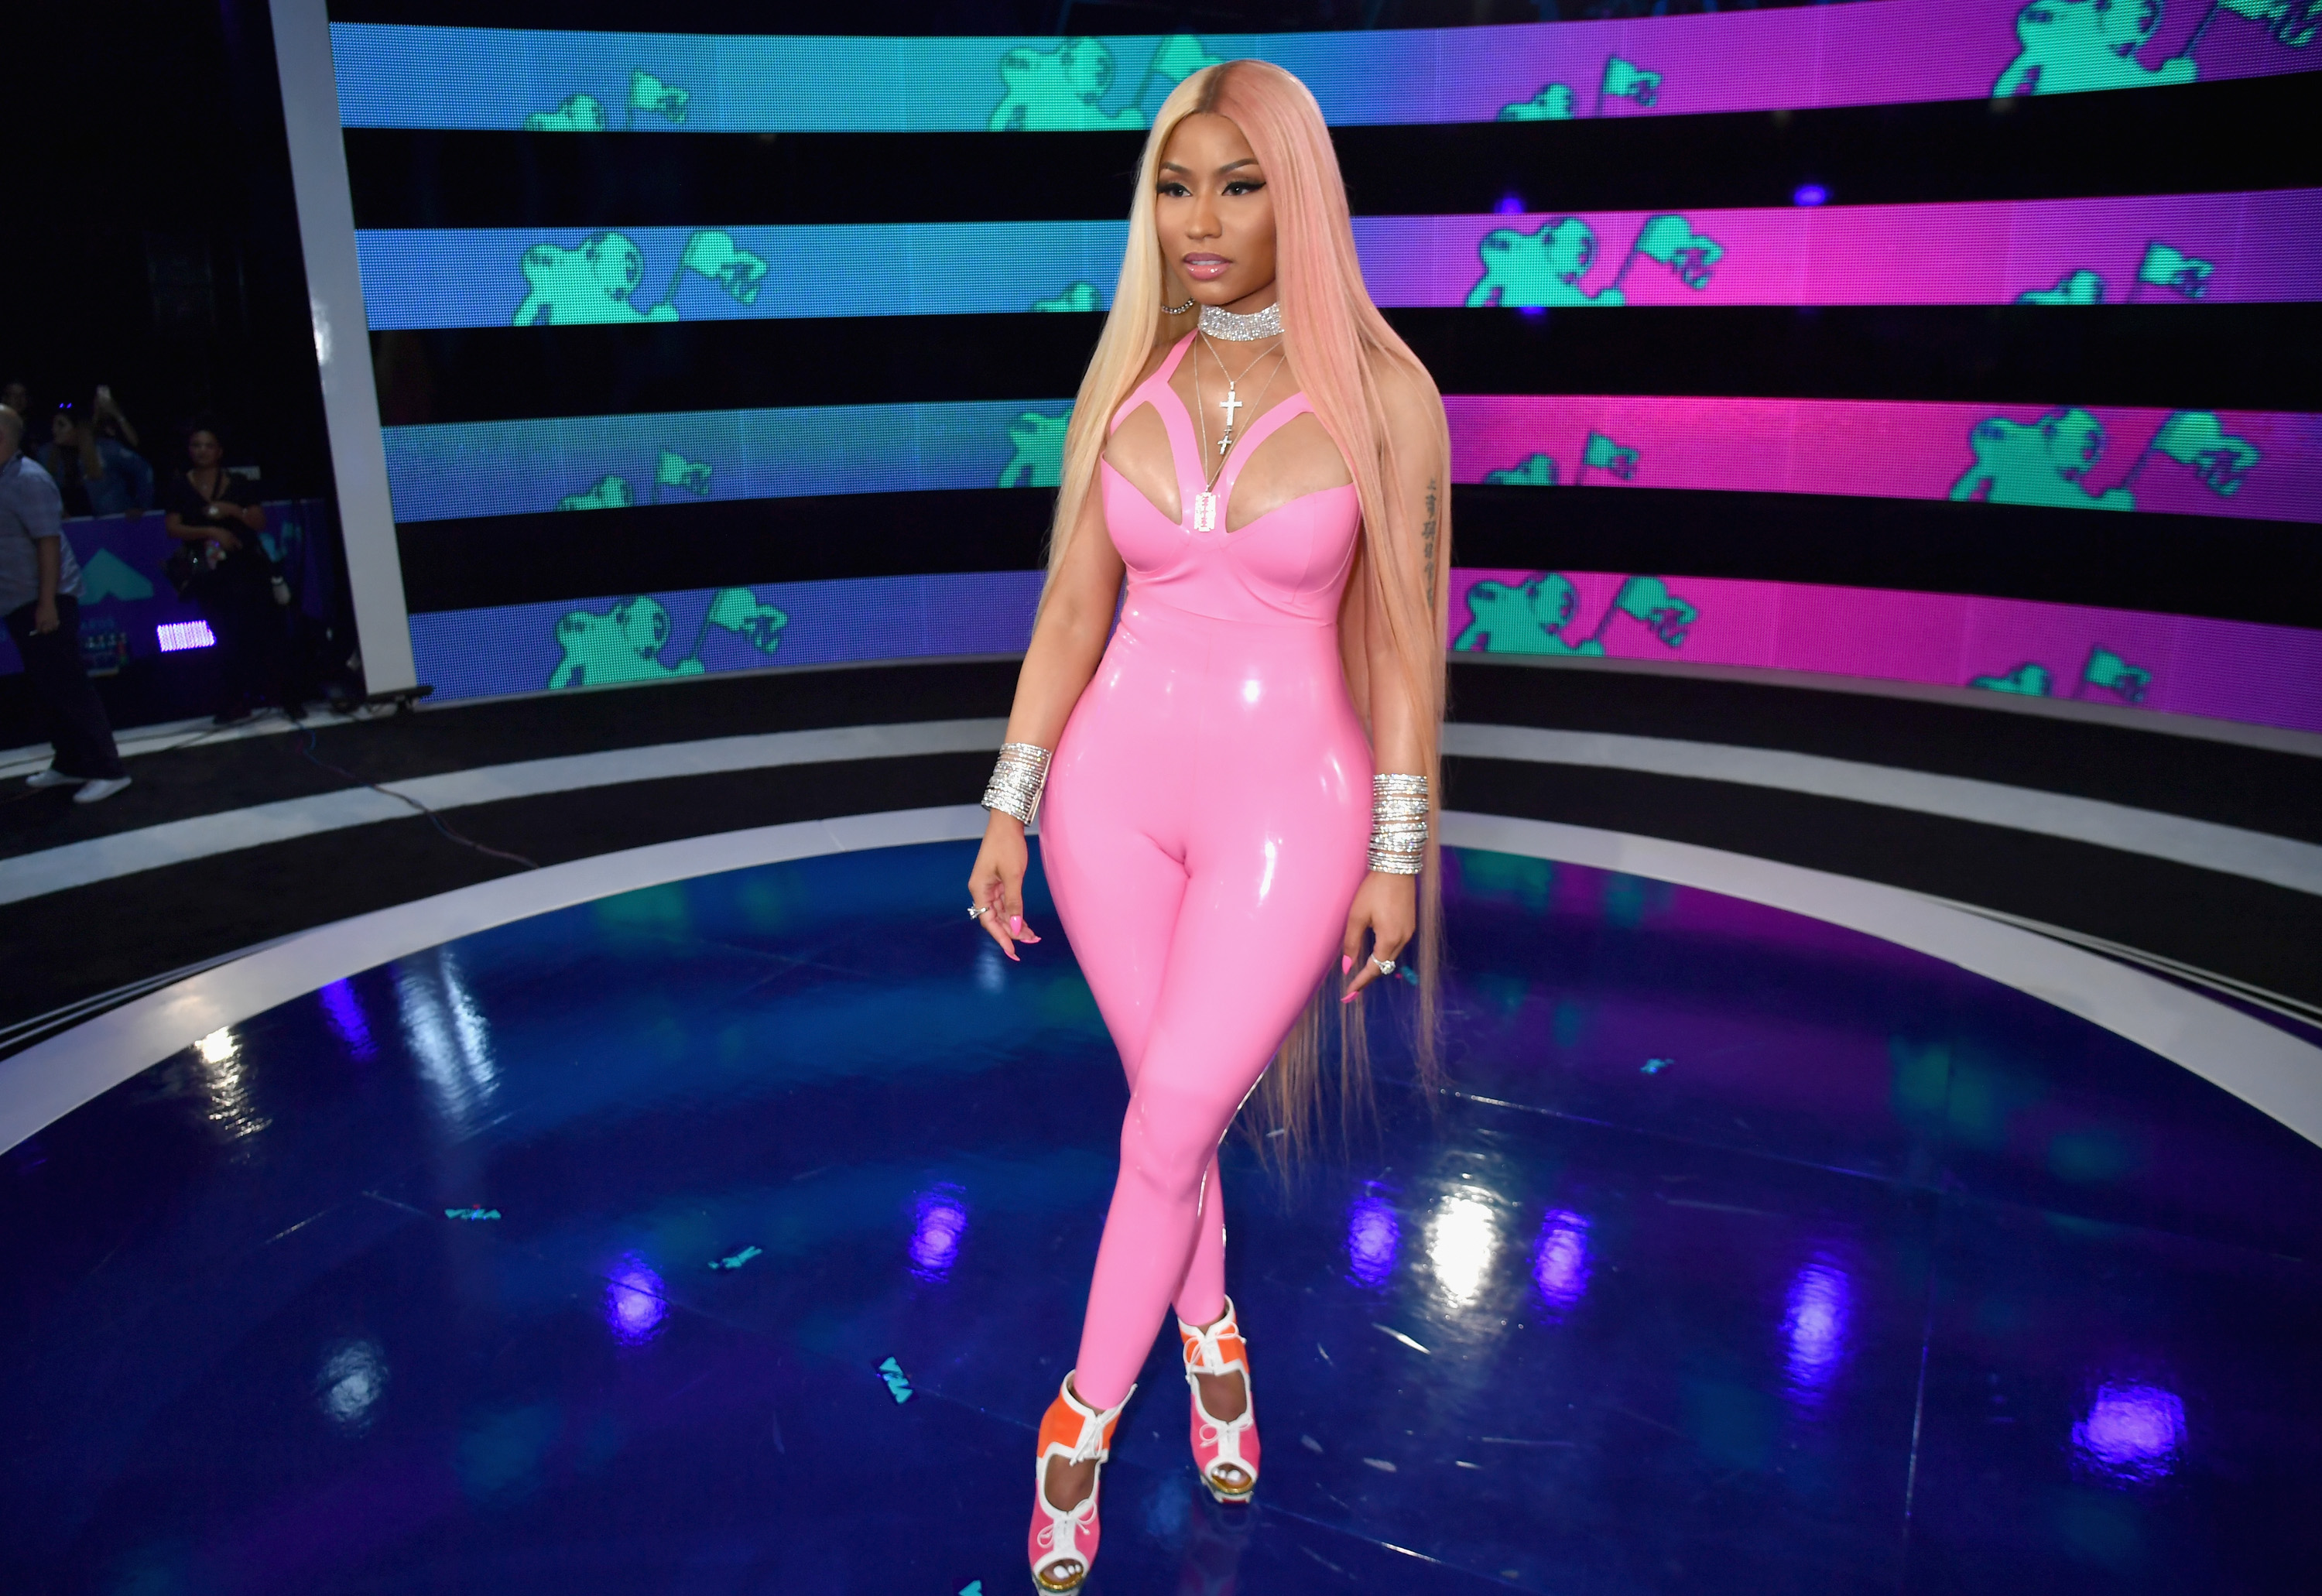 Amber Michaels Forum 2017 vmas style was all about getting graphic and going bold